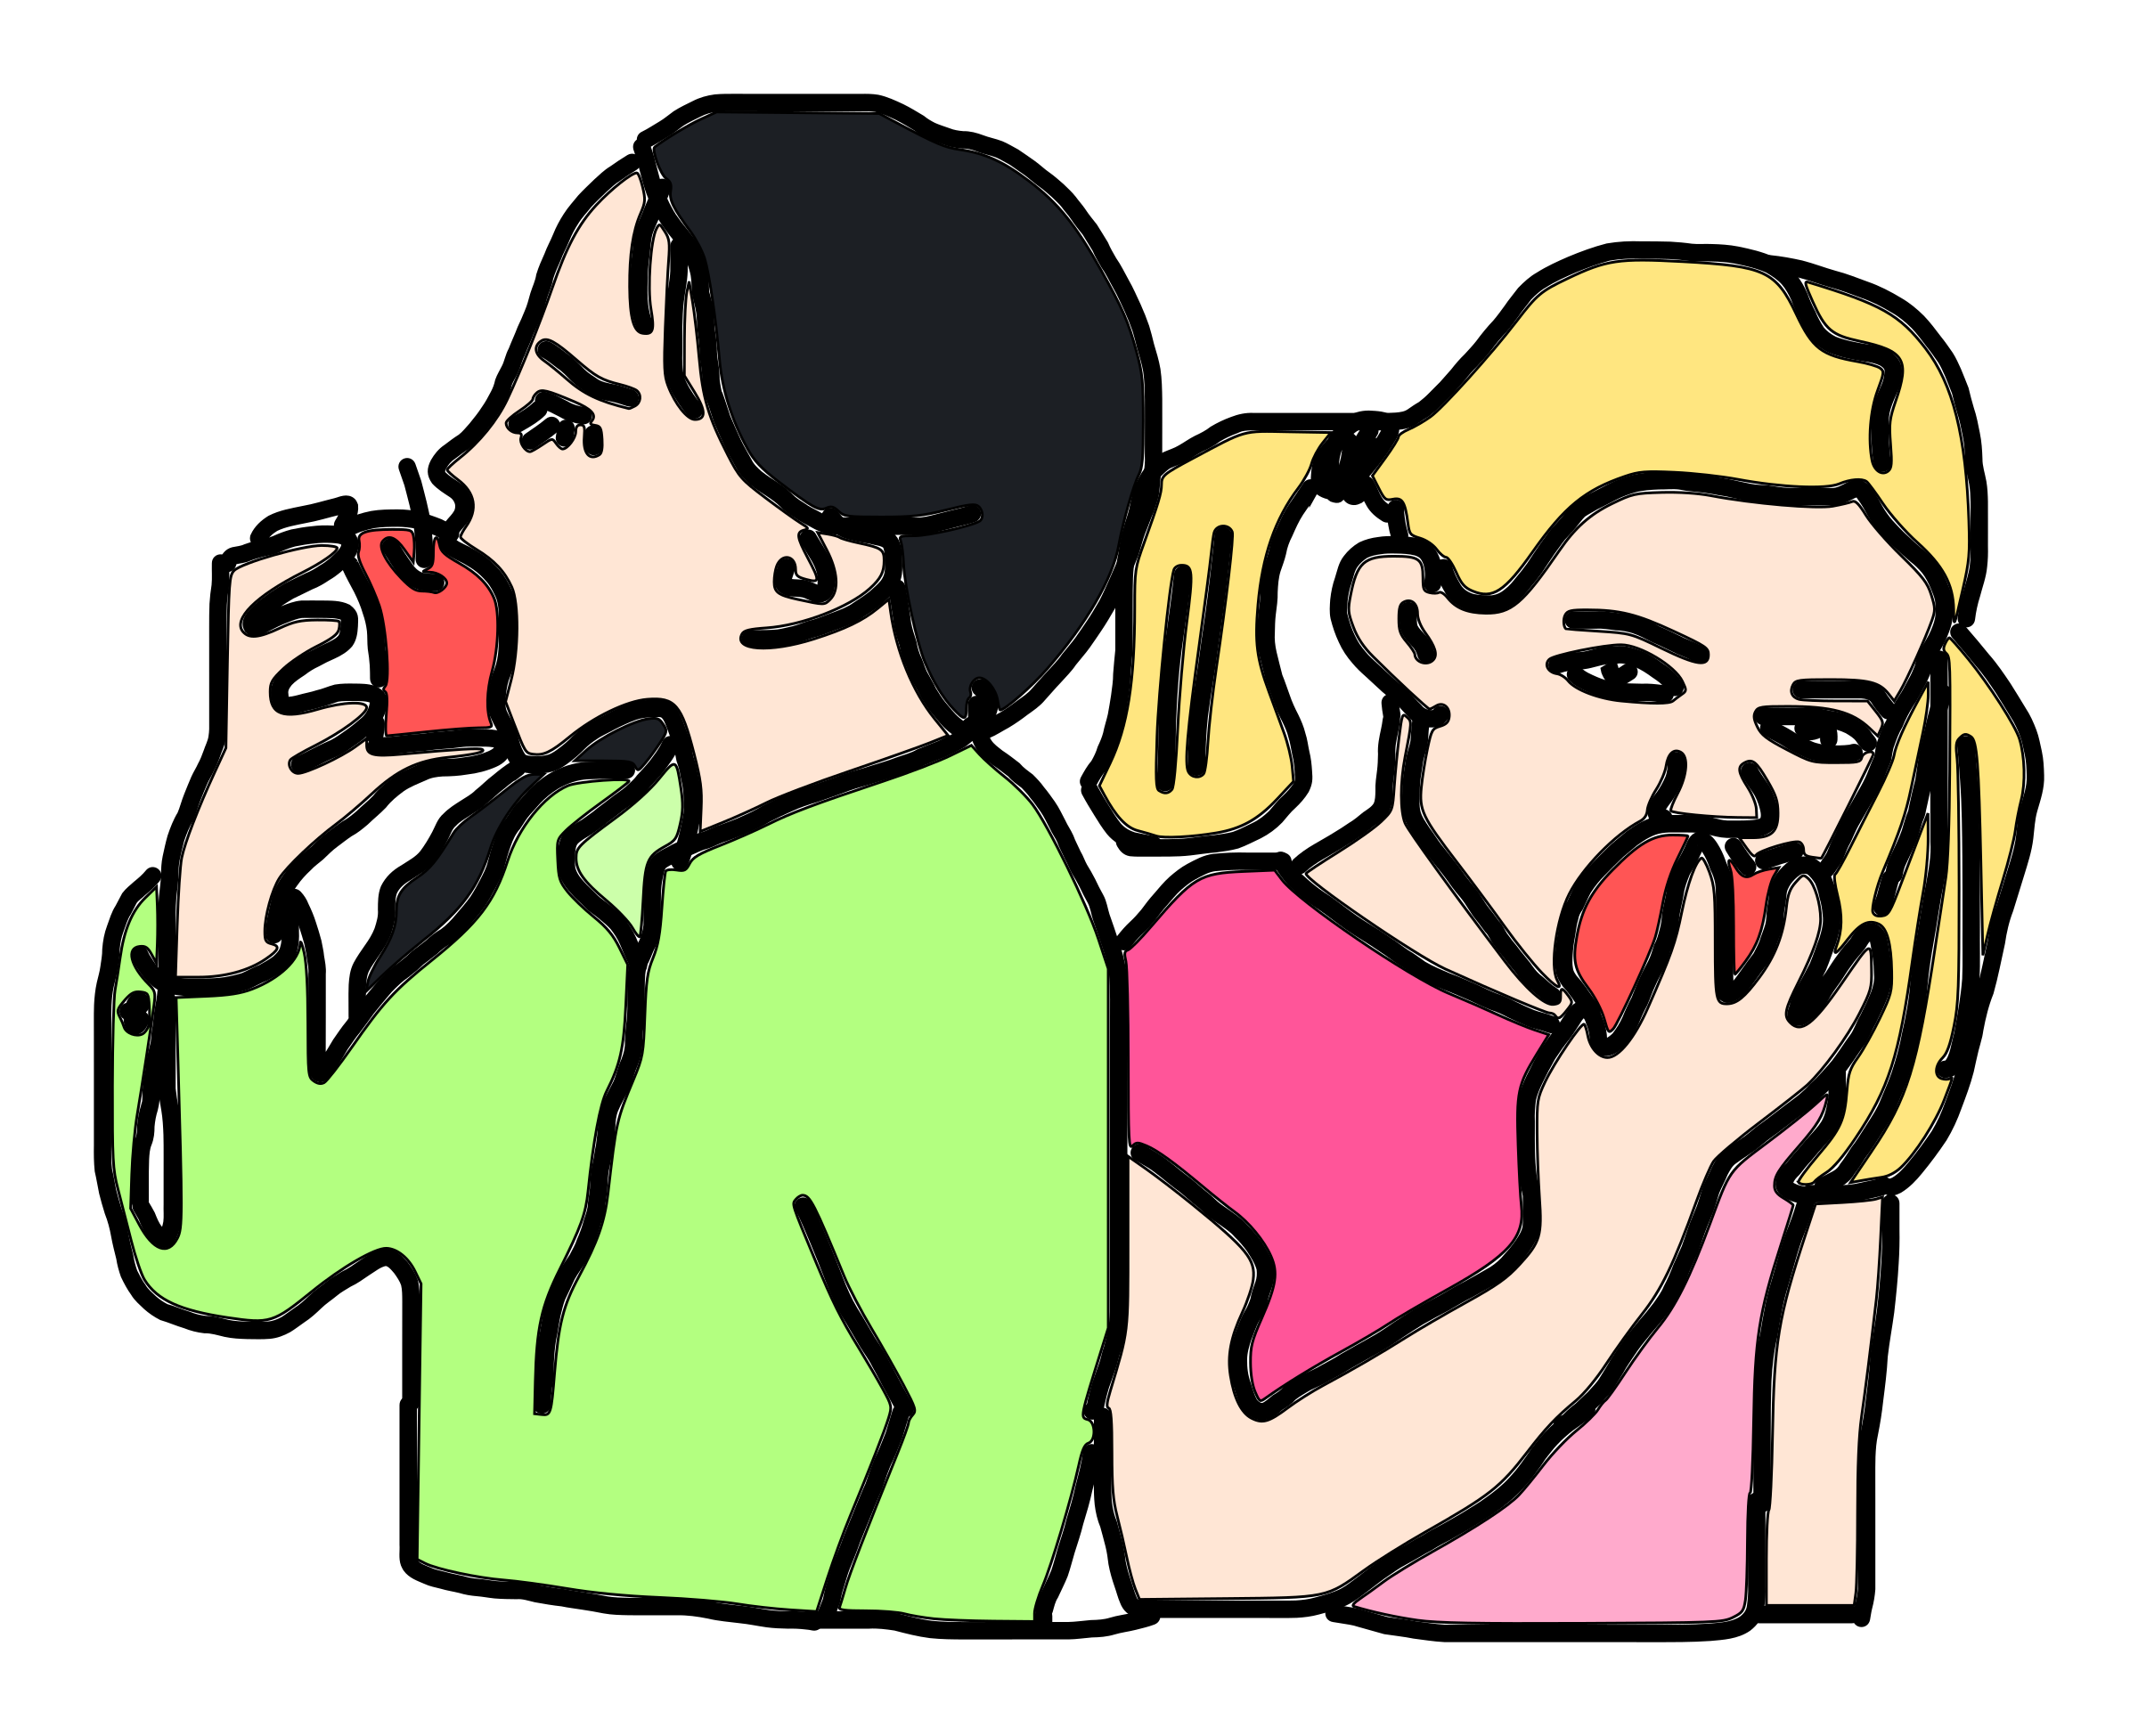 Girls are eating apples. by loveandread